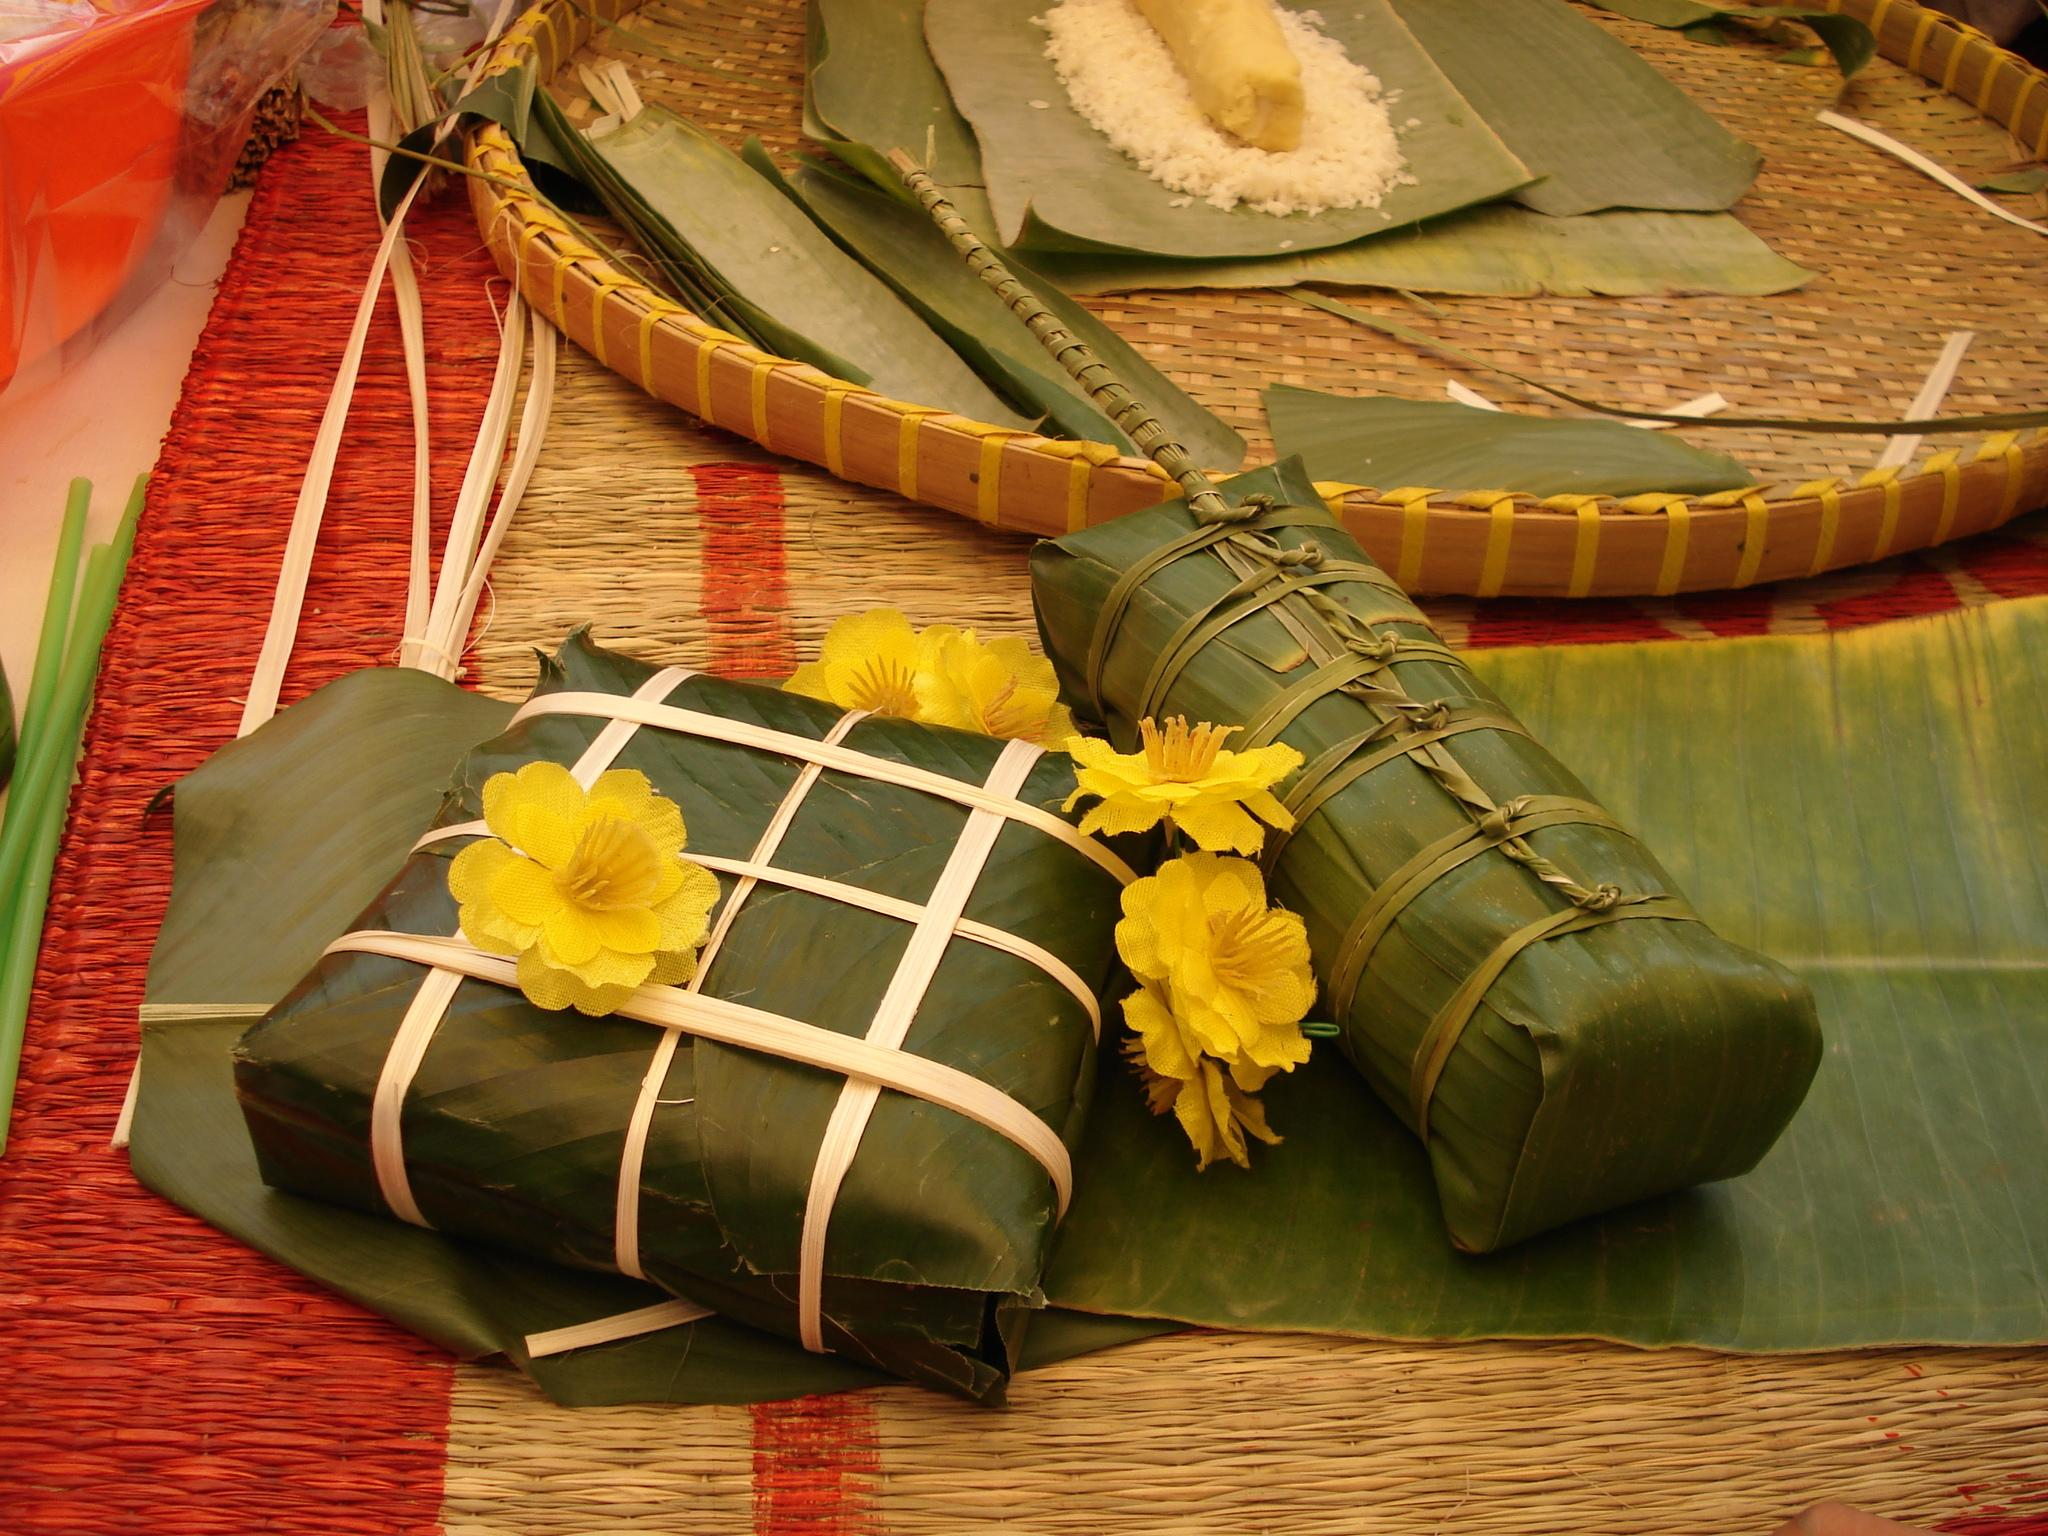 Banh Chung and Banh Tet are glutinous rice cakes wrapped in bamboo ...